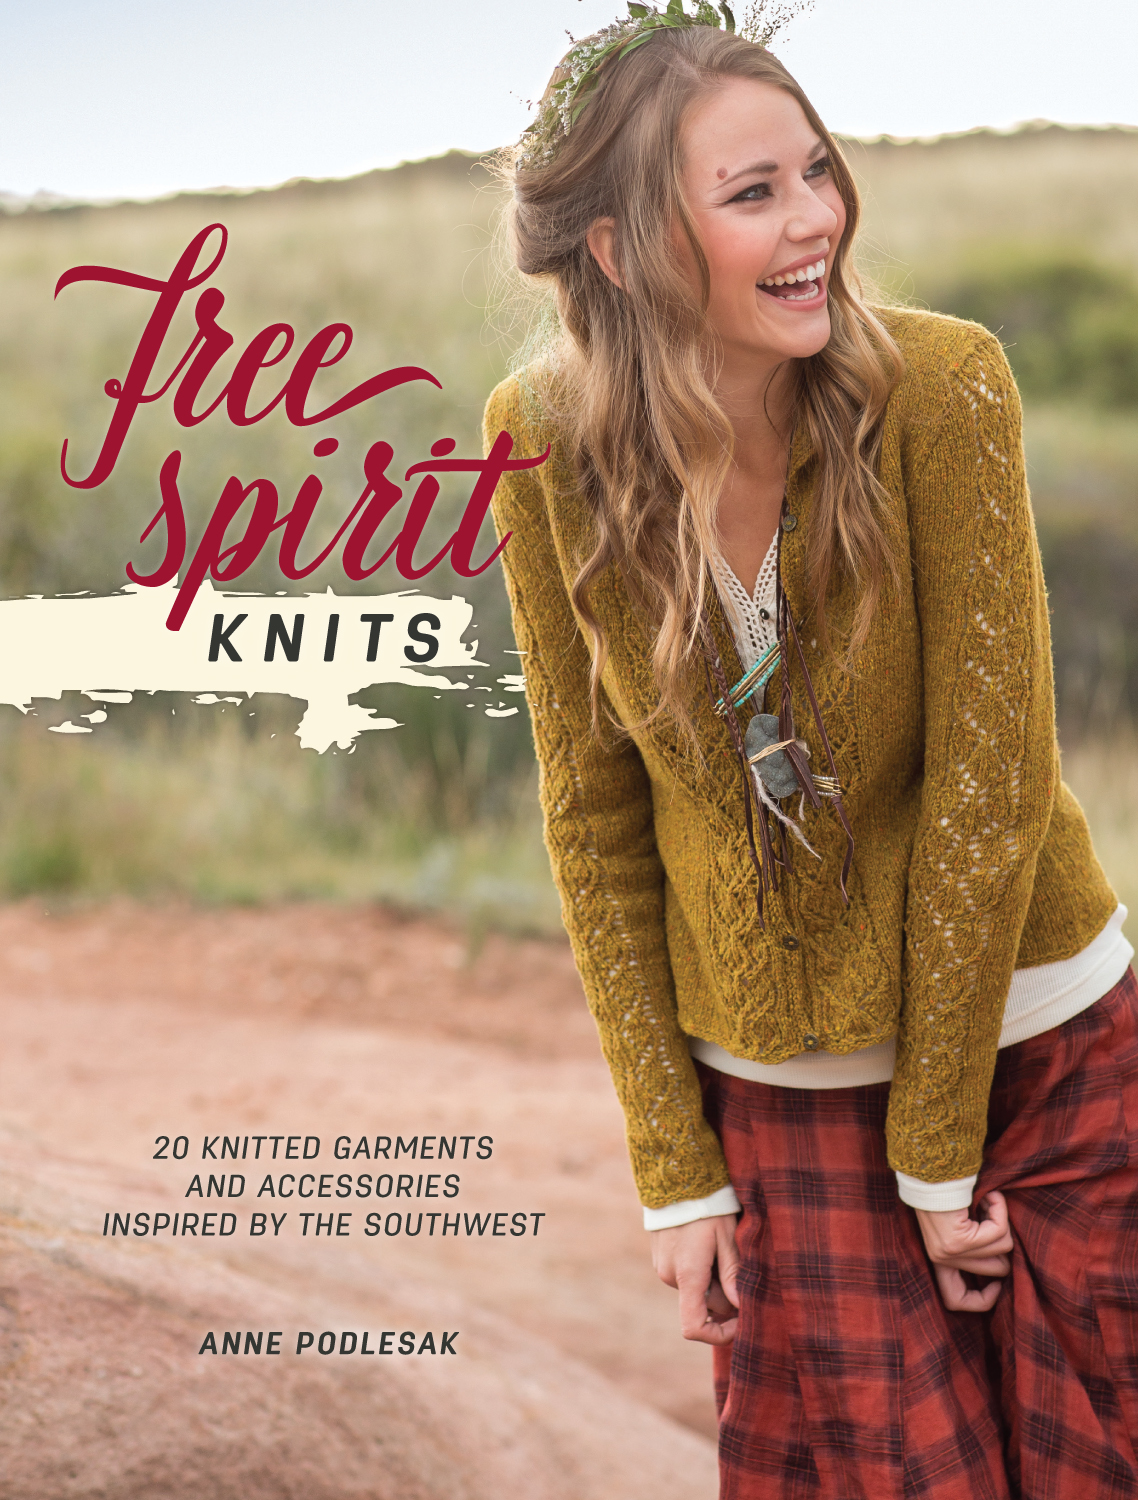 Free Spitit Knits Cover